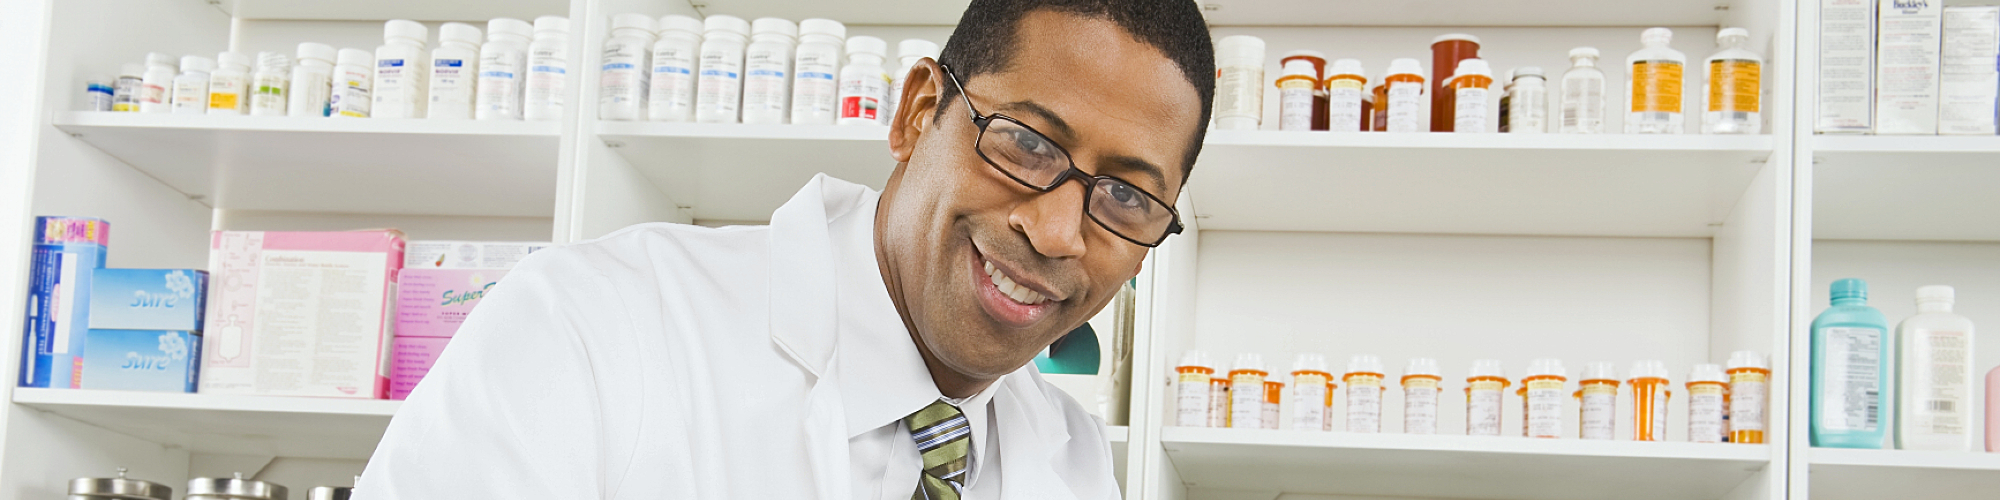 african american doctor smiling at camera